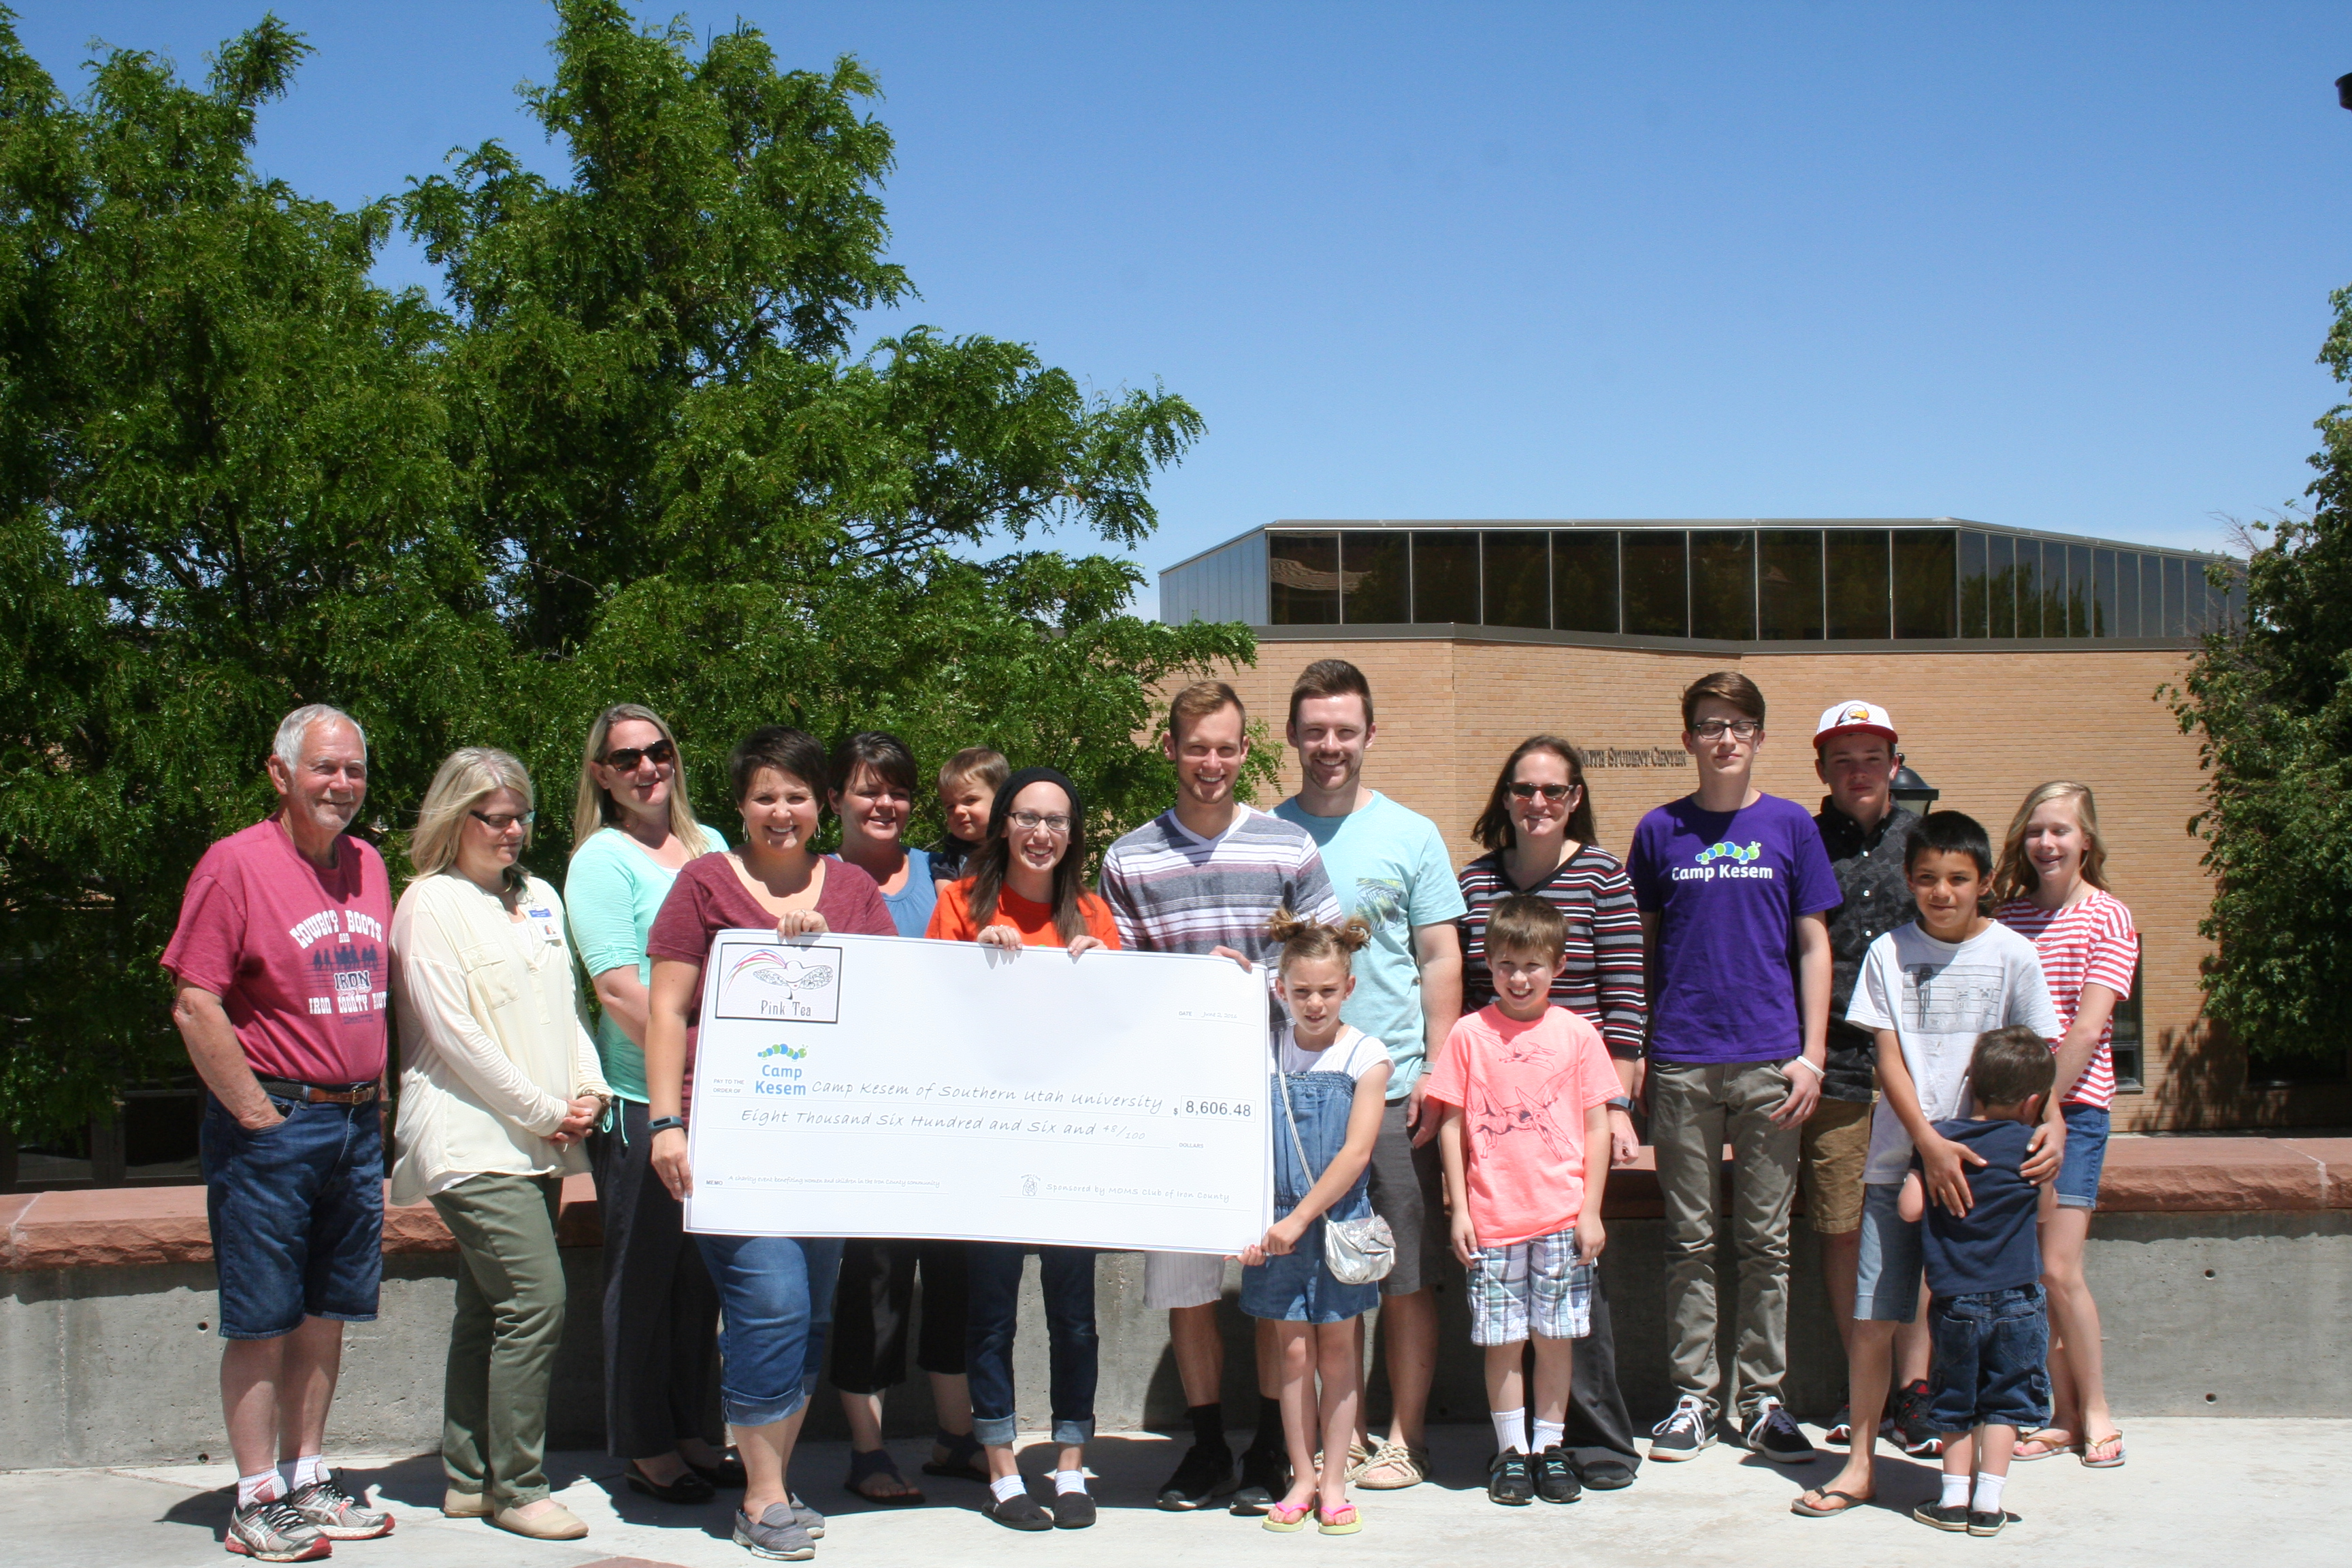 Children and counselors who participate in Camp Kesem receive a check provided through the Pink Tea fundraiser by the Iron County Moms club, Cedar City, Utah, June 1, 2016   Photo by Kaleigh Bronson, St. George News